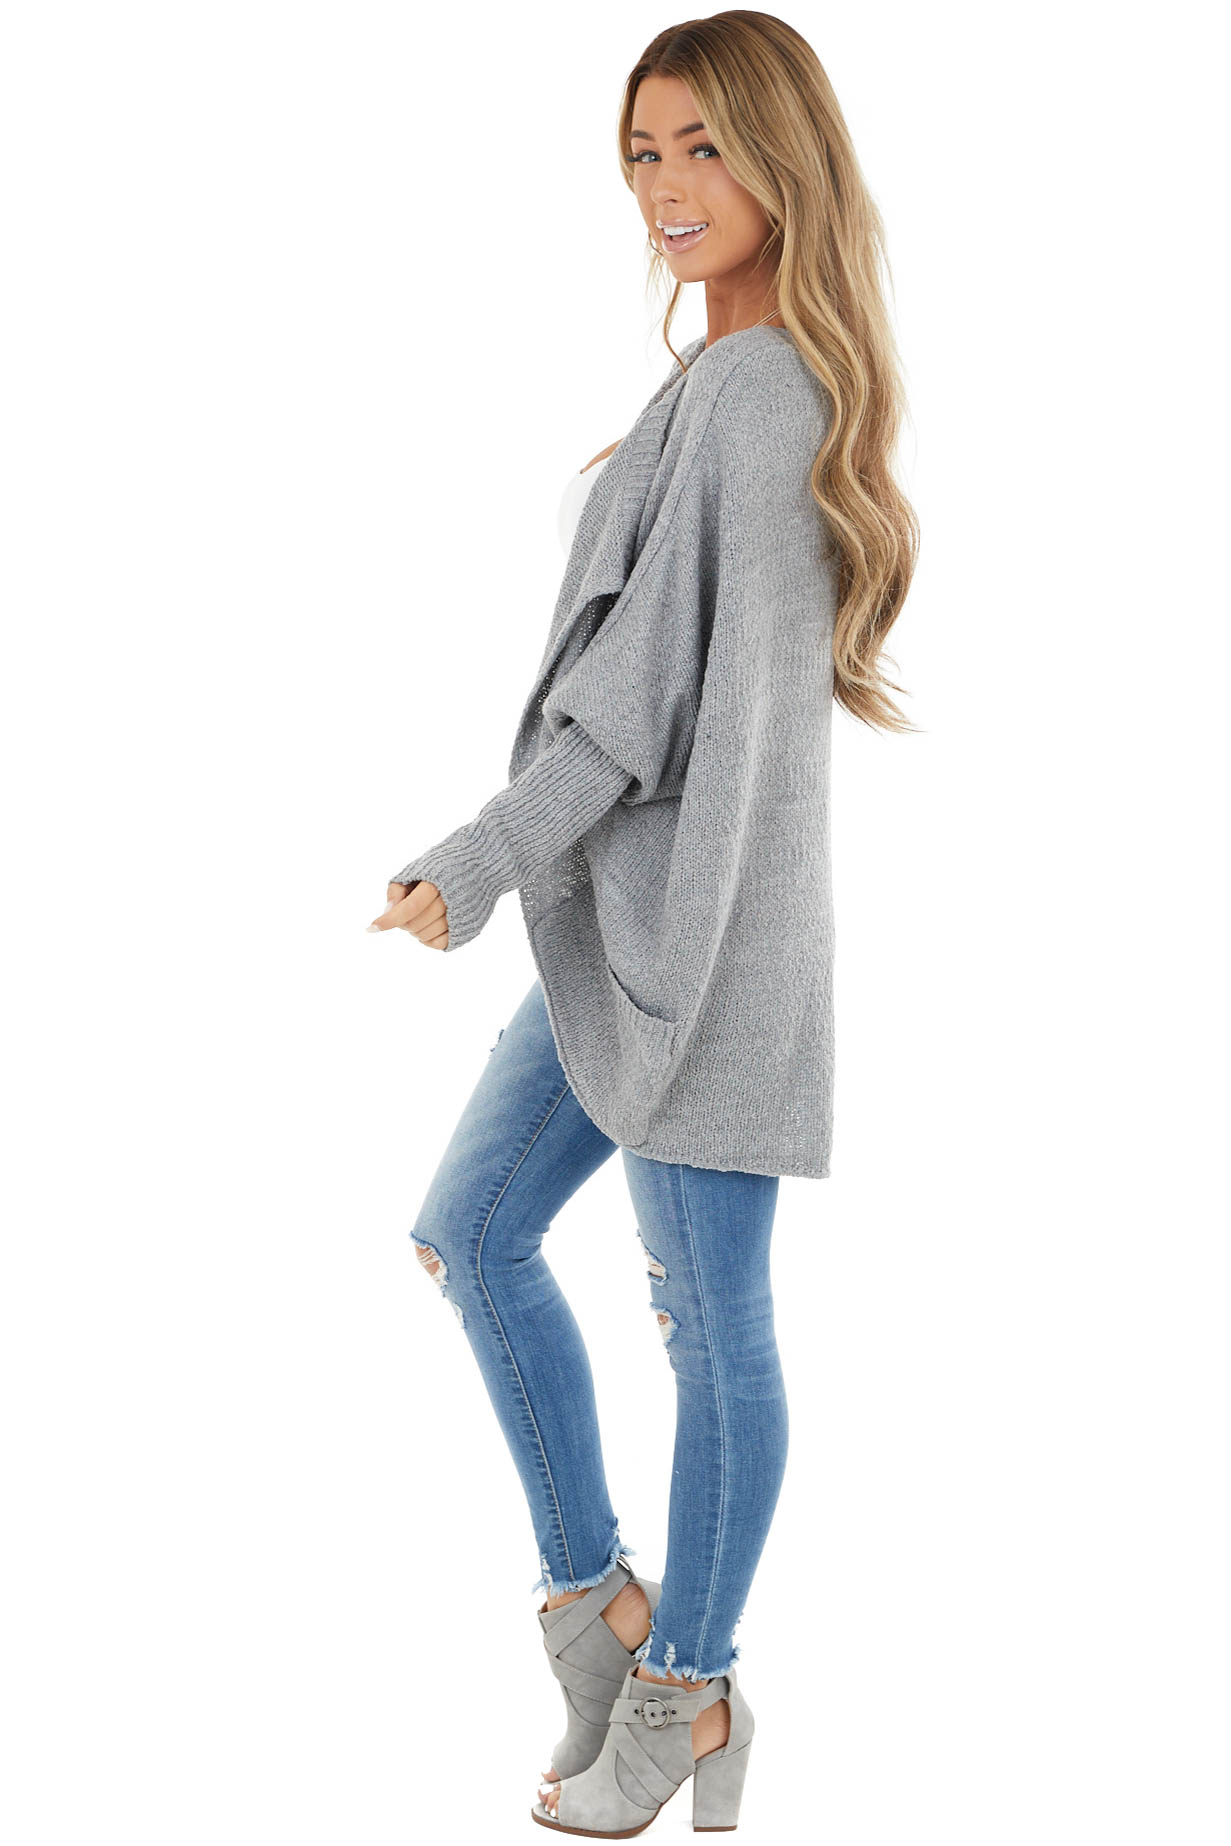 Slate Grey Open Front Cardigan with Long Dolman Sleeves